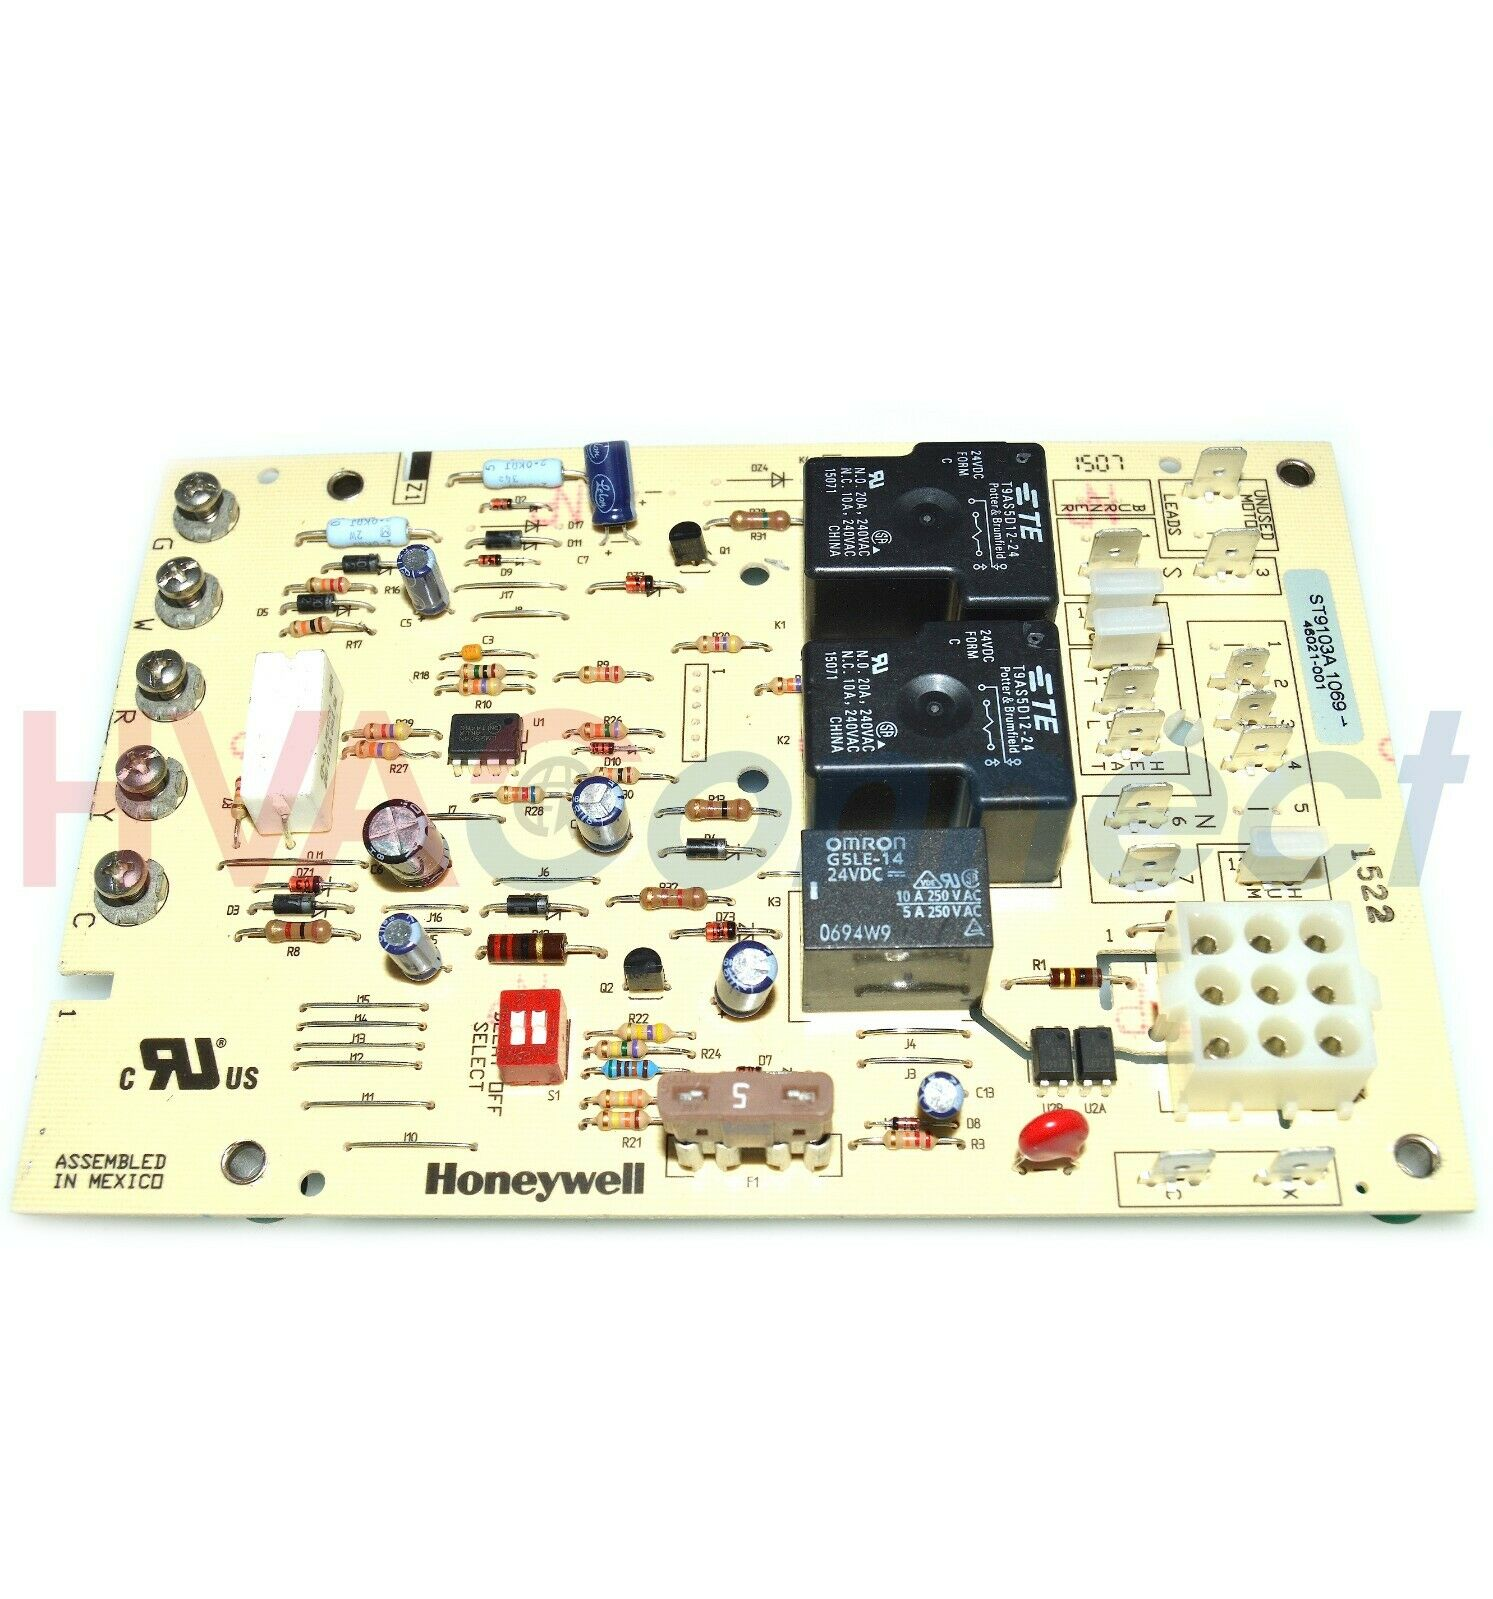 OEM Lennox Honeywell Furnace Control Circuit Board ST9103A1069 ST9103A 1069  1 of 1Only 4 available ...